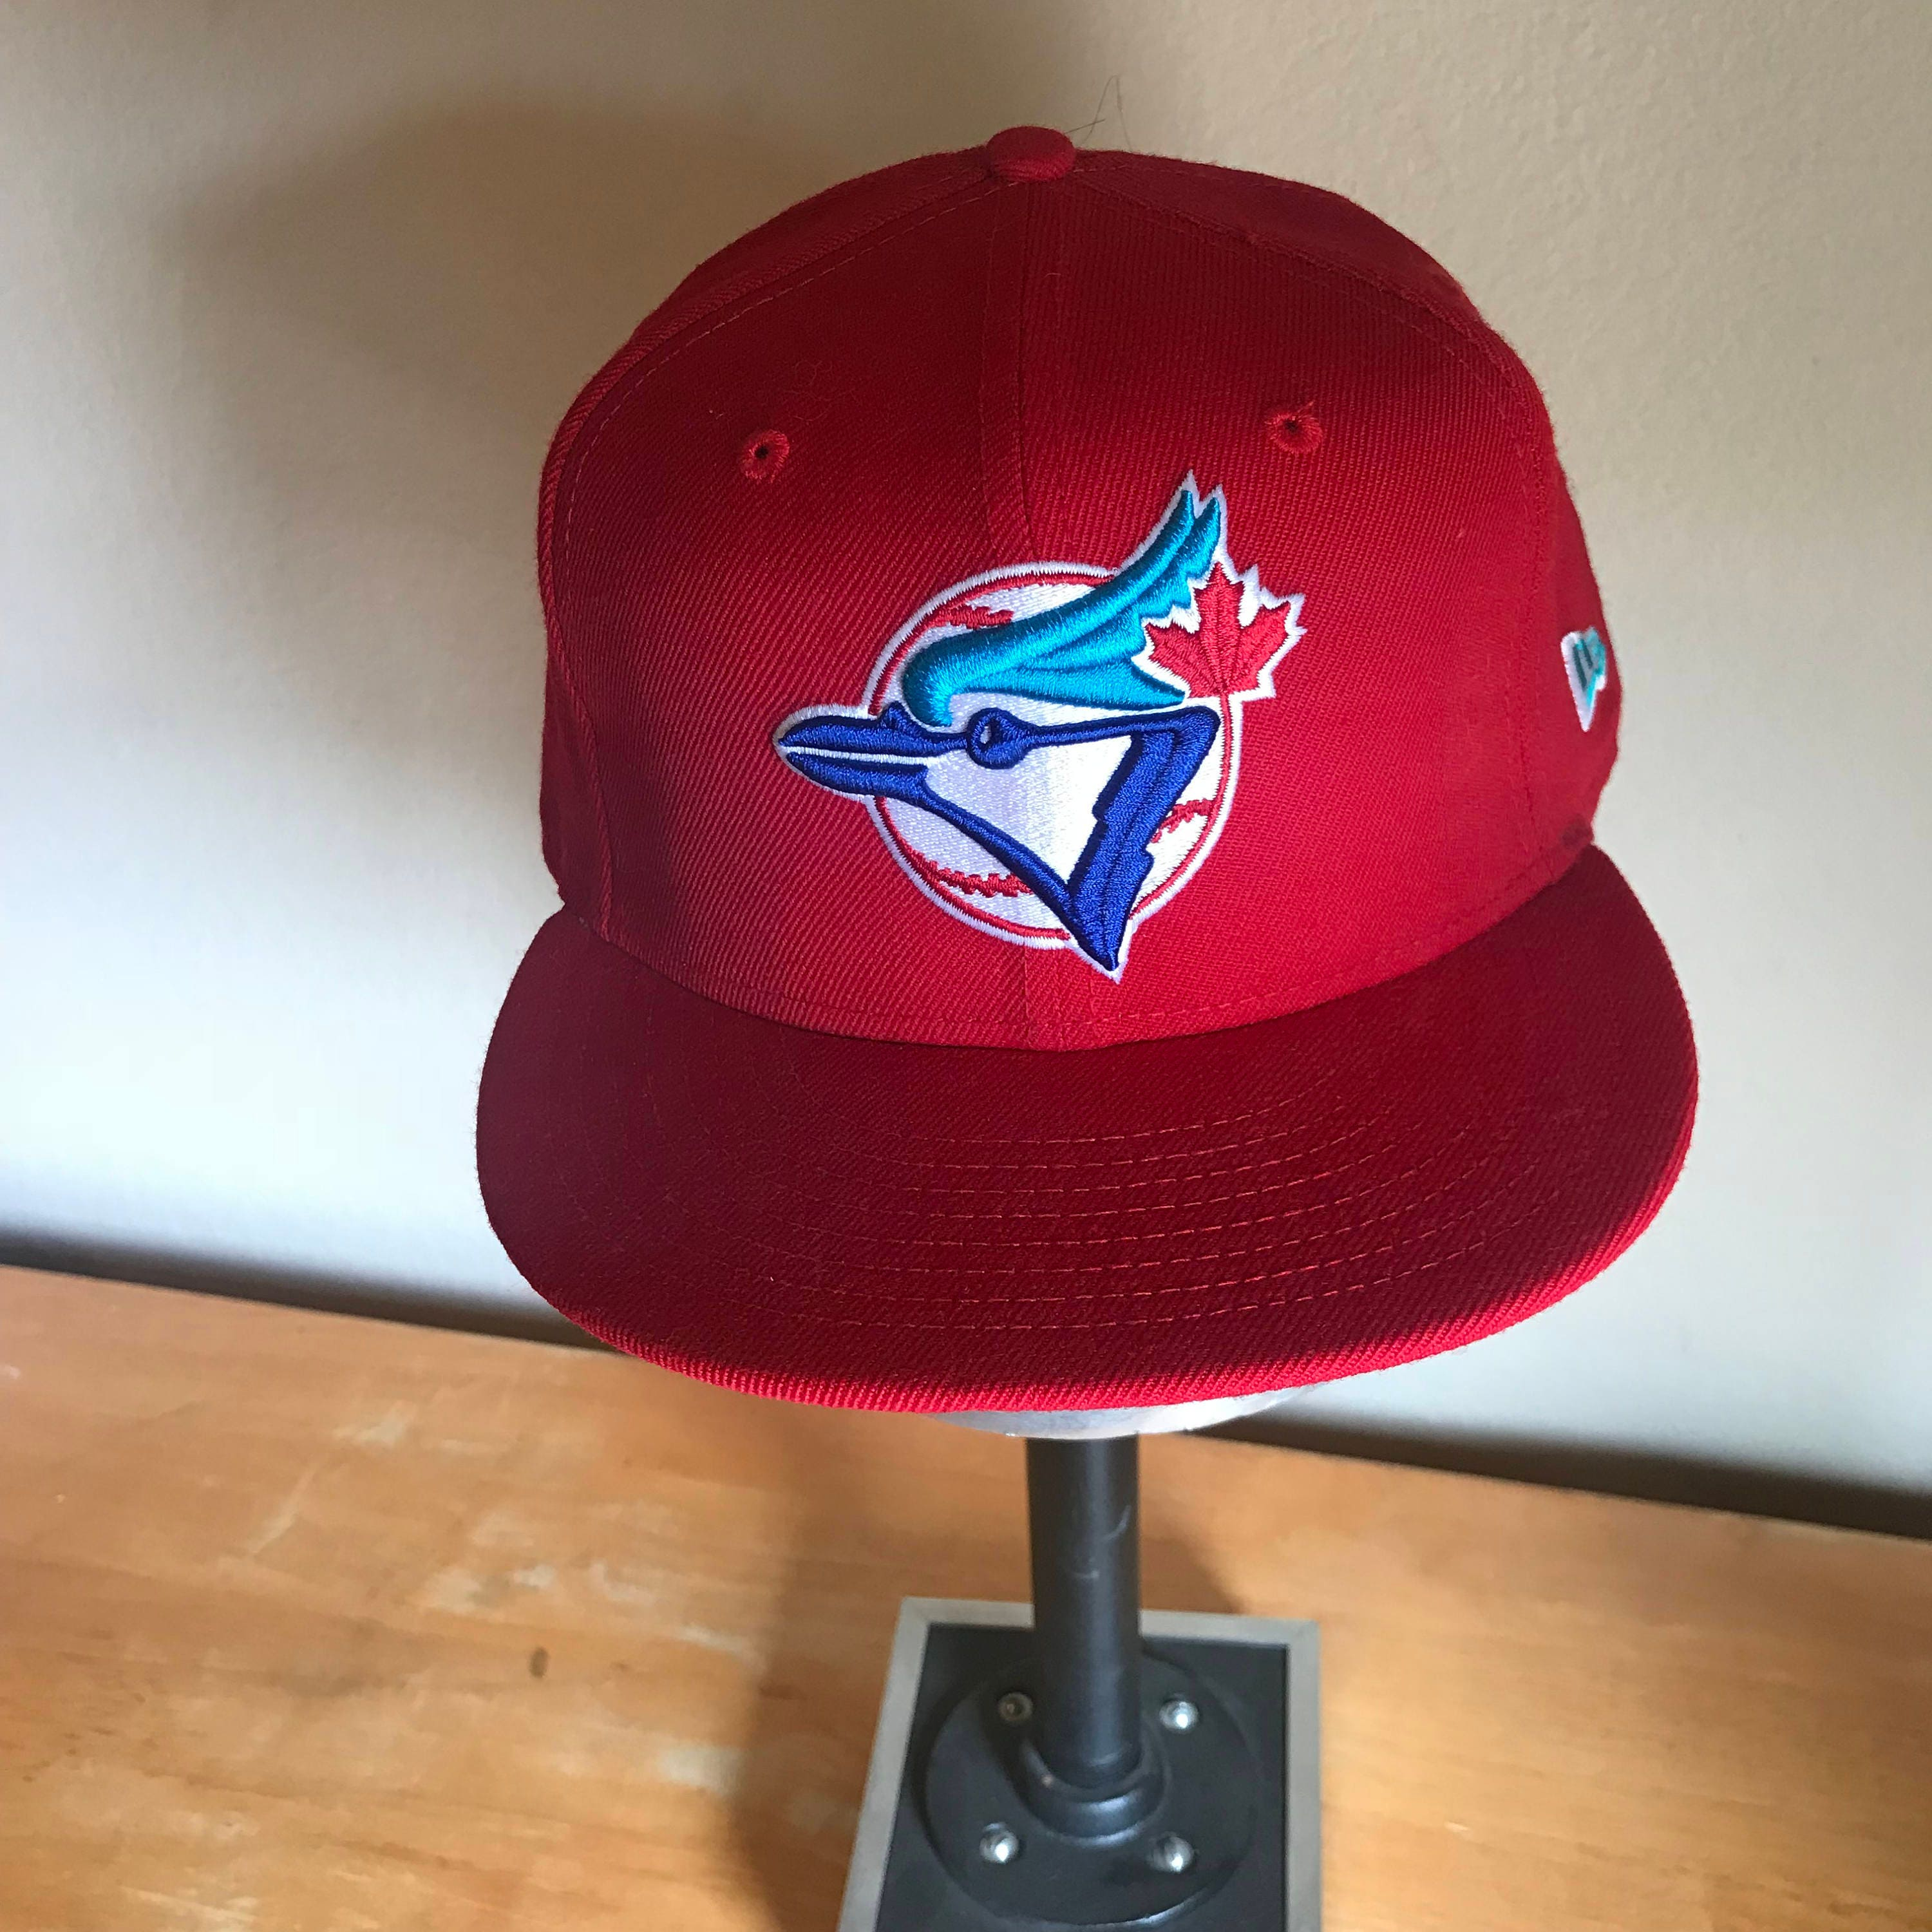 outlet store 43158 c0a3f Toronto Blue Jays Rare Red New Era 59FIFTY Fitted Baseball Cap   Etsy